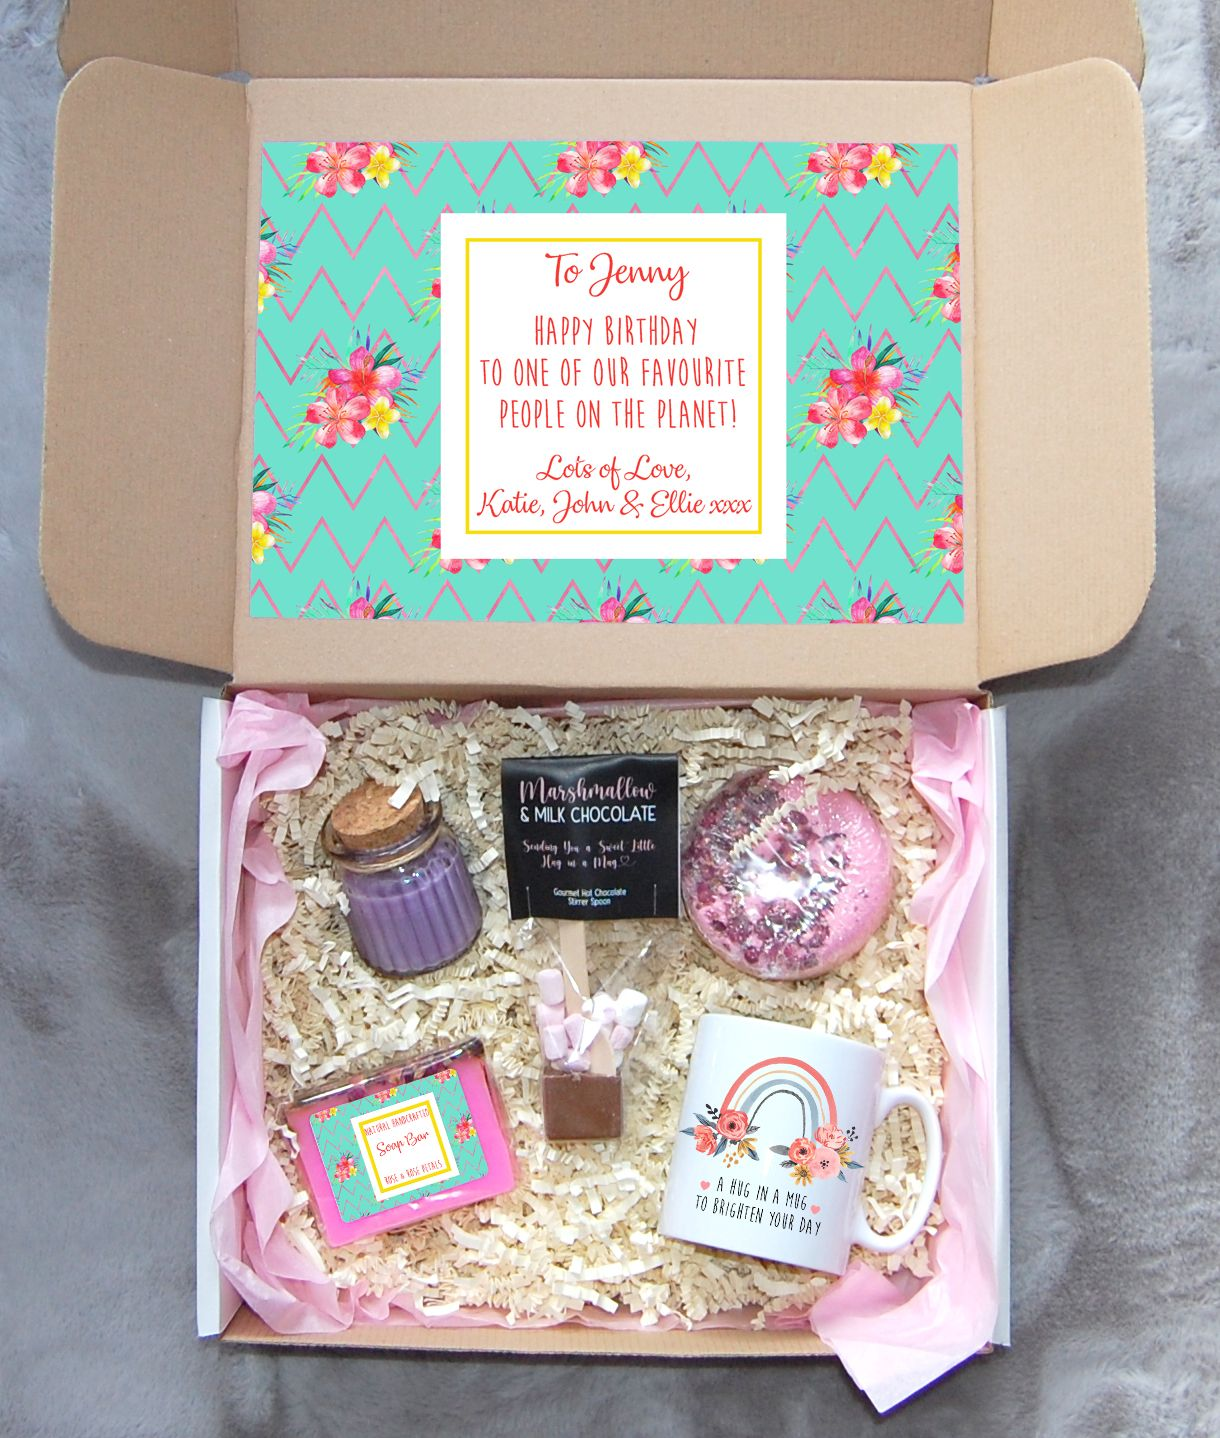 Personalised Gift Box Birthday Gift Set Friend Birthday Gift Box Gifts For Her Self Care Box A